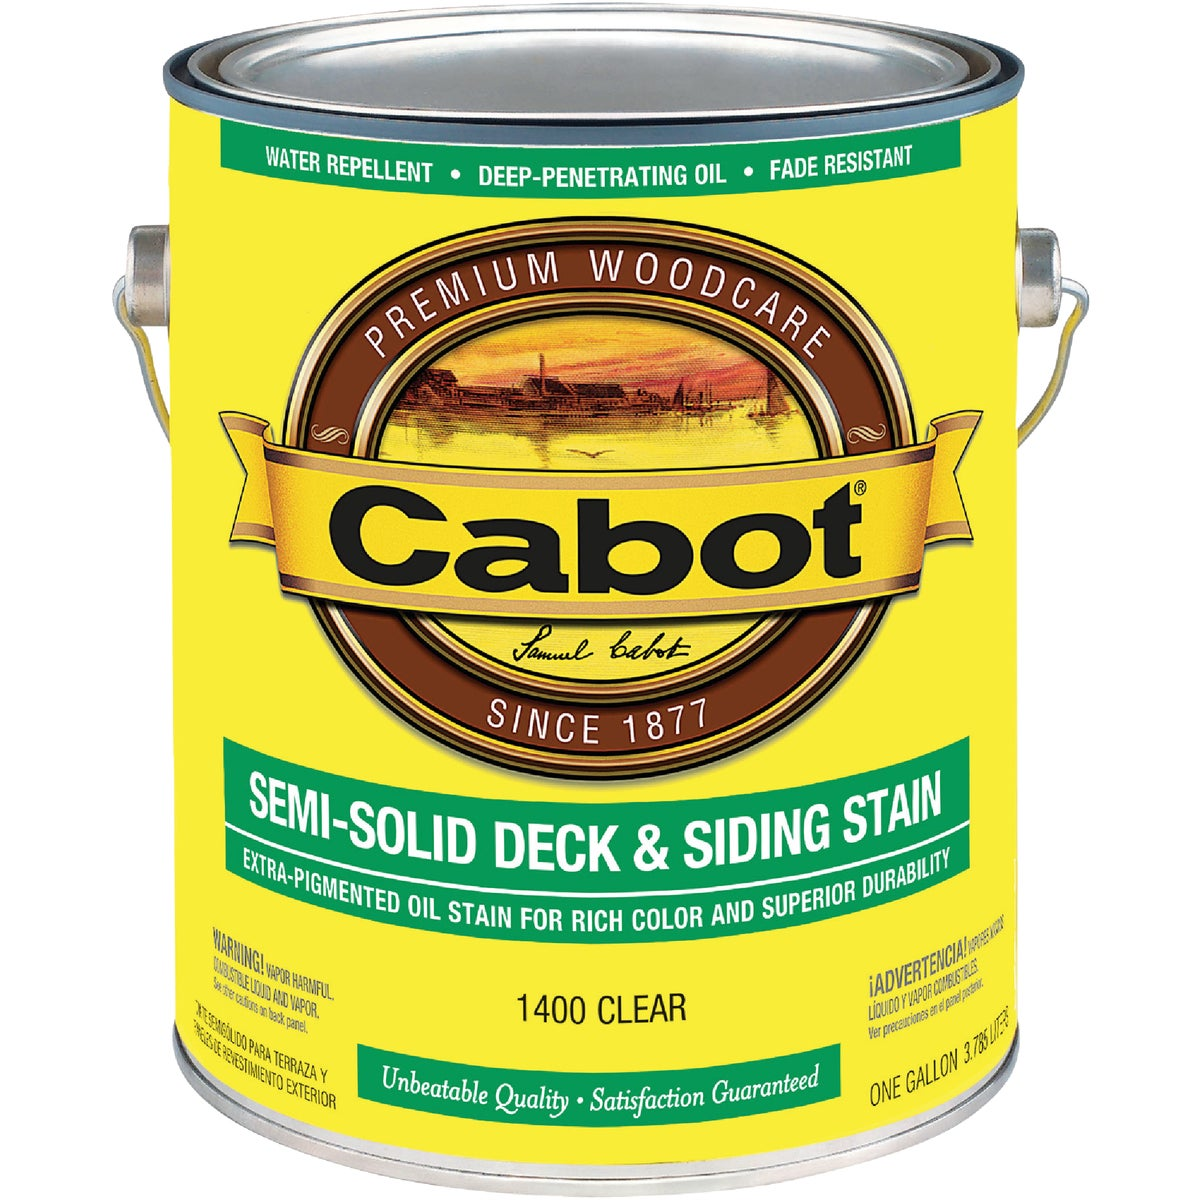 CLEAR SEM-SOL DECK STAIN - 140.0001400.007 by Valspar Corp